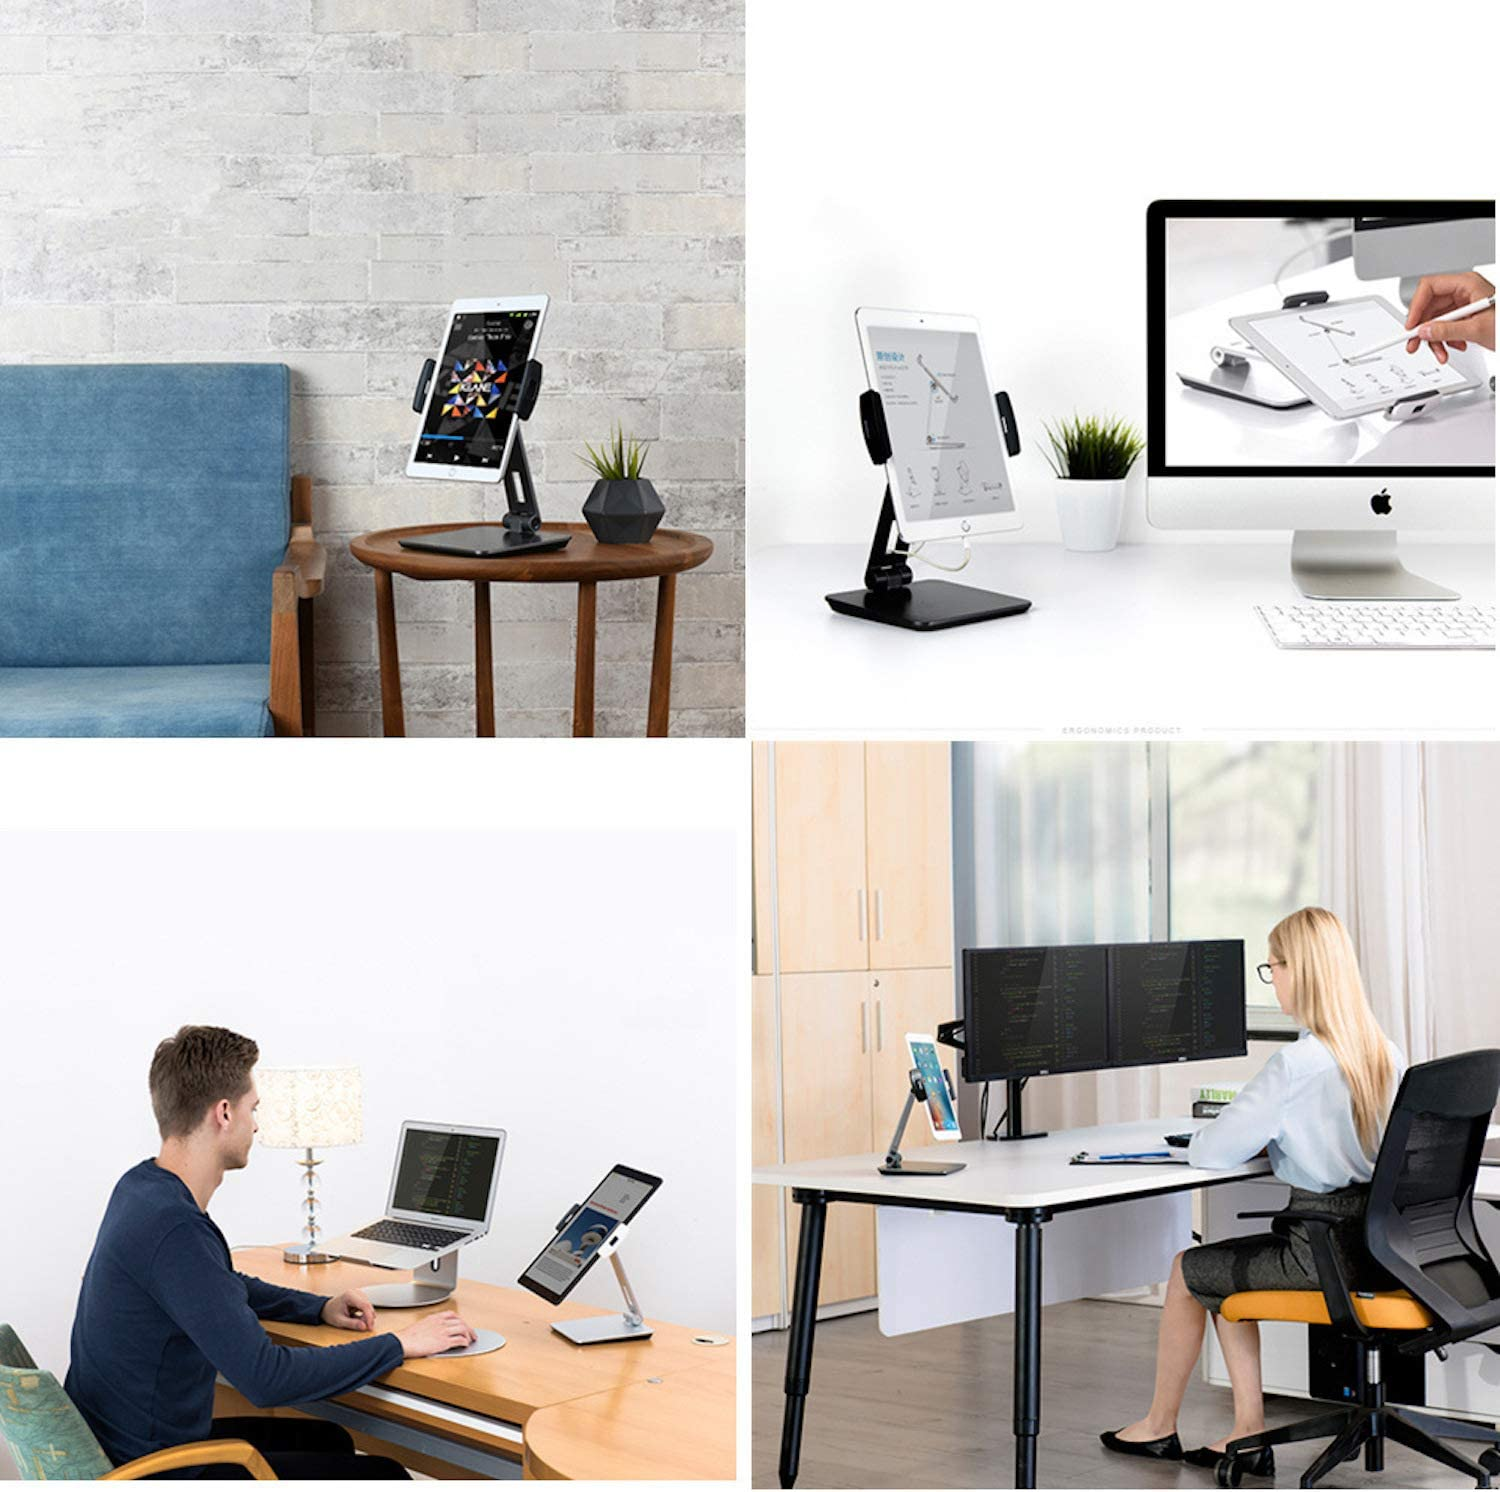 Silver, Large Flexible Tablet Mount for Home Office /& Commercial Desktop with 360/° Swivel Holders for Any 4-14 Display Tablets or Cell Phones Professional Business POS Tablet Stand